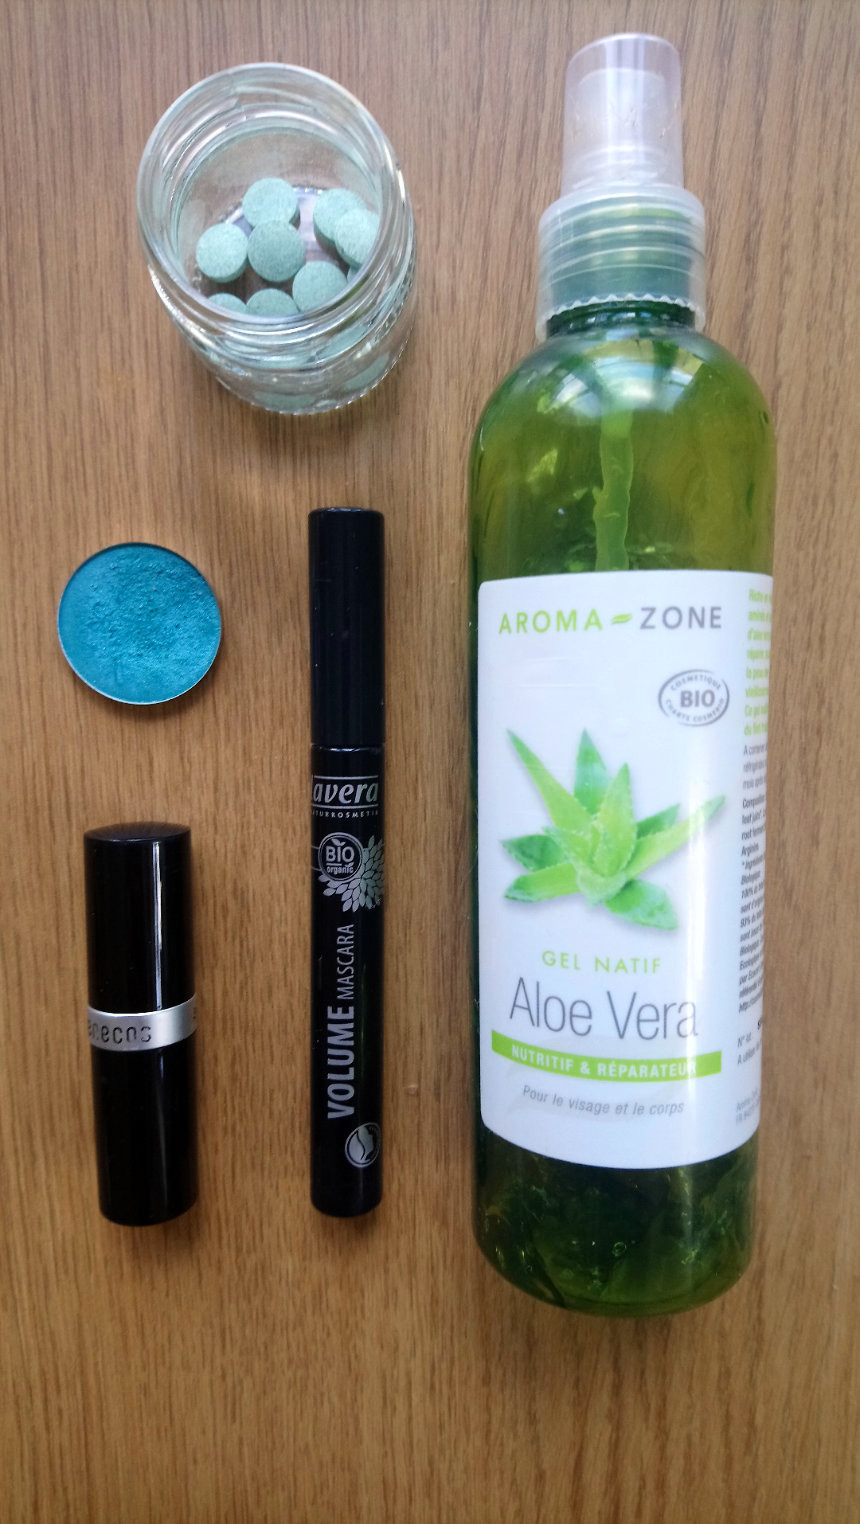 minimal waste travel beauty kit with vegan aloe vera, makeup and mouth wash